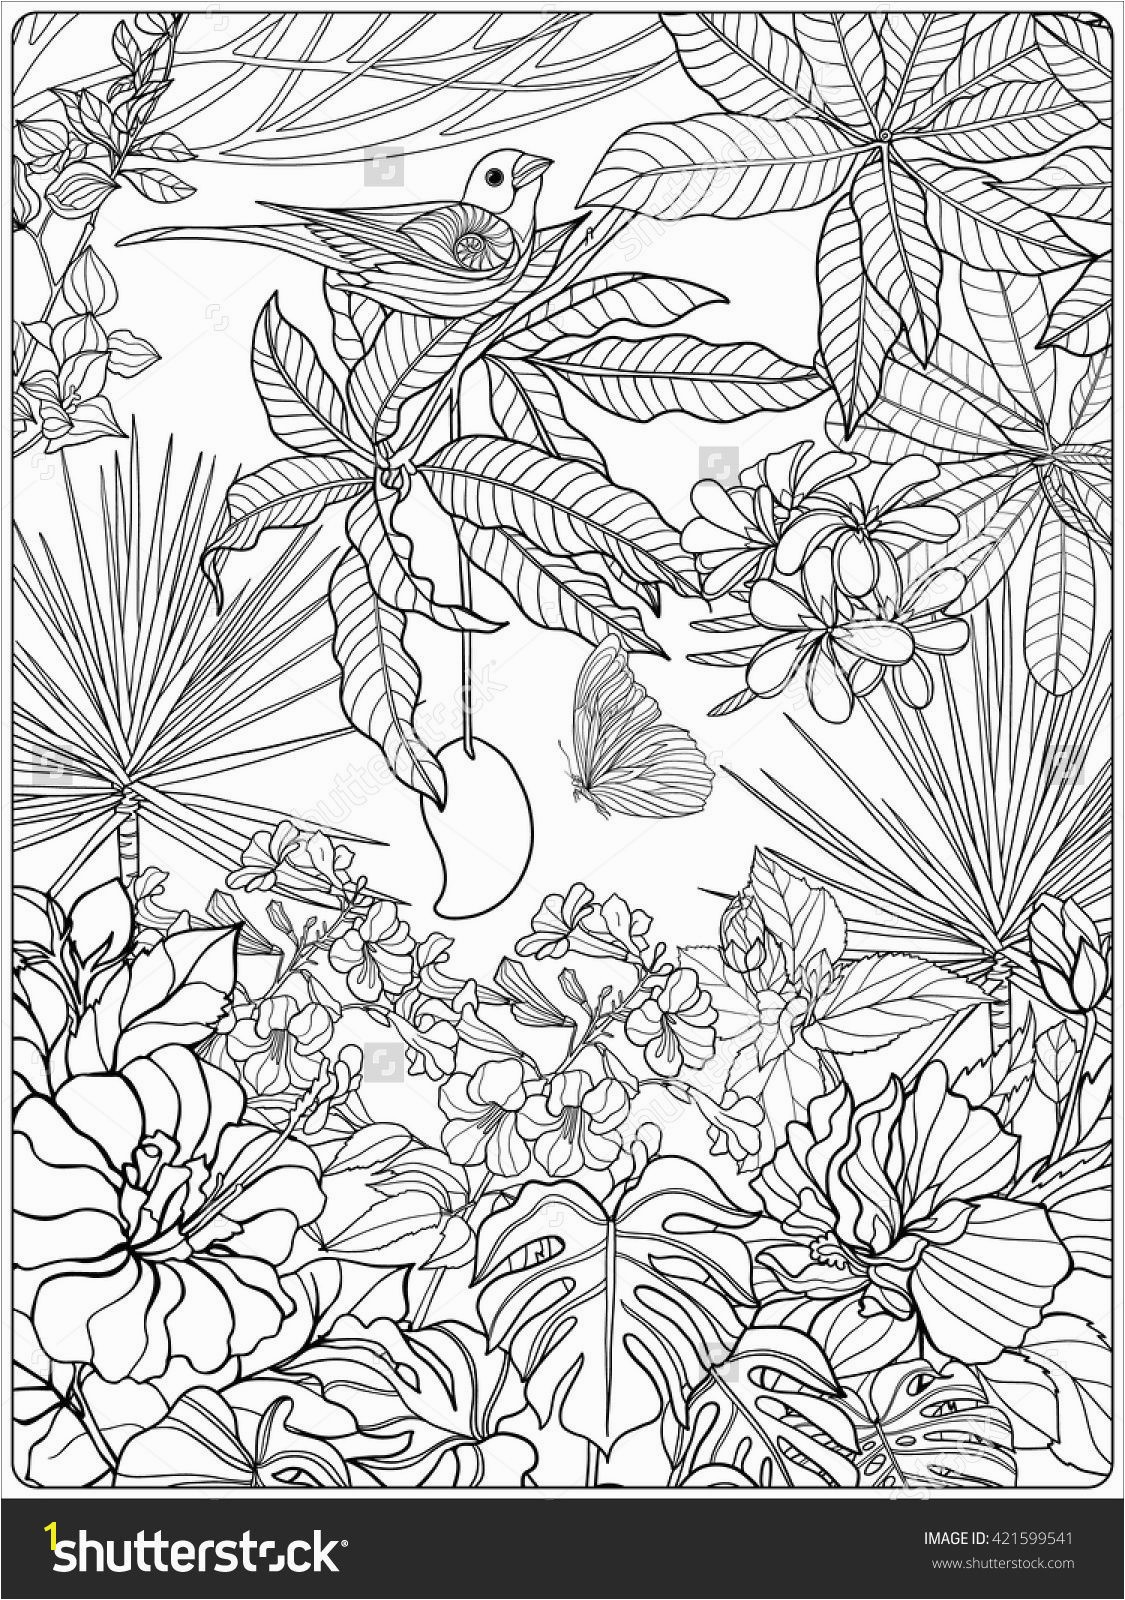 Sumerian Coloring Pages Fresh Tropical Wild Birds and Plants Tropical Garden Collection Coloring Sumerian Coloring